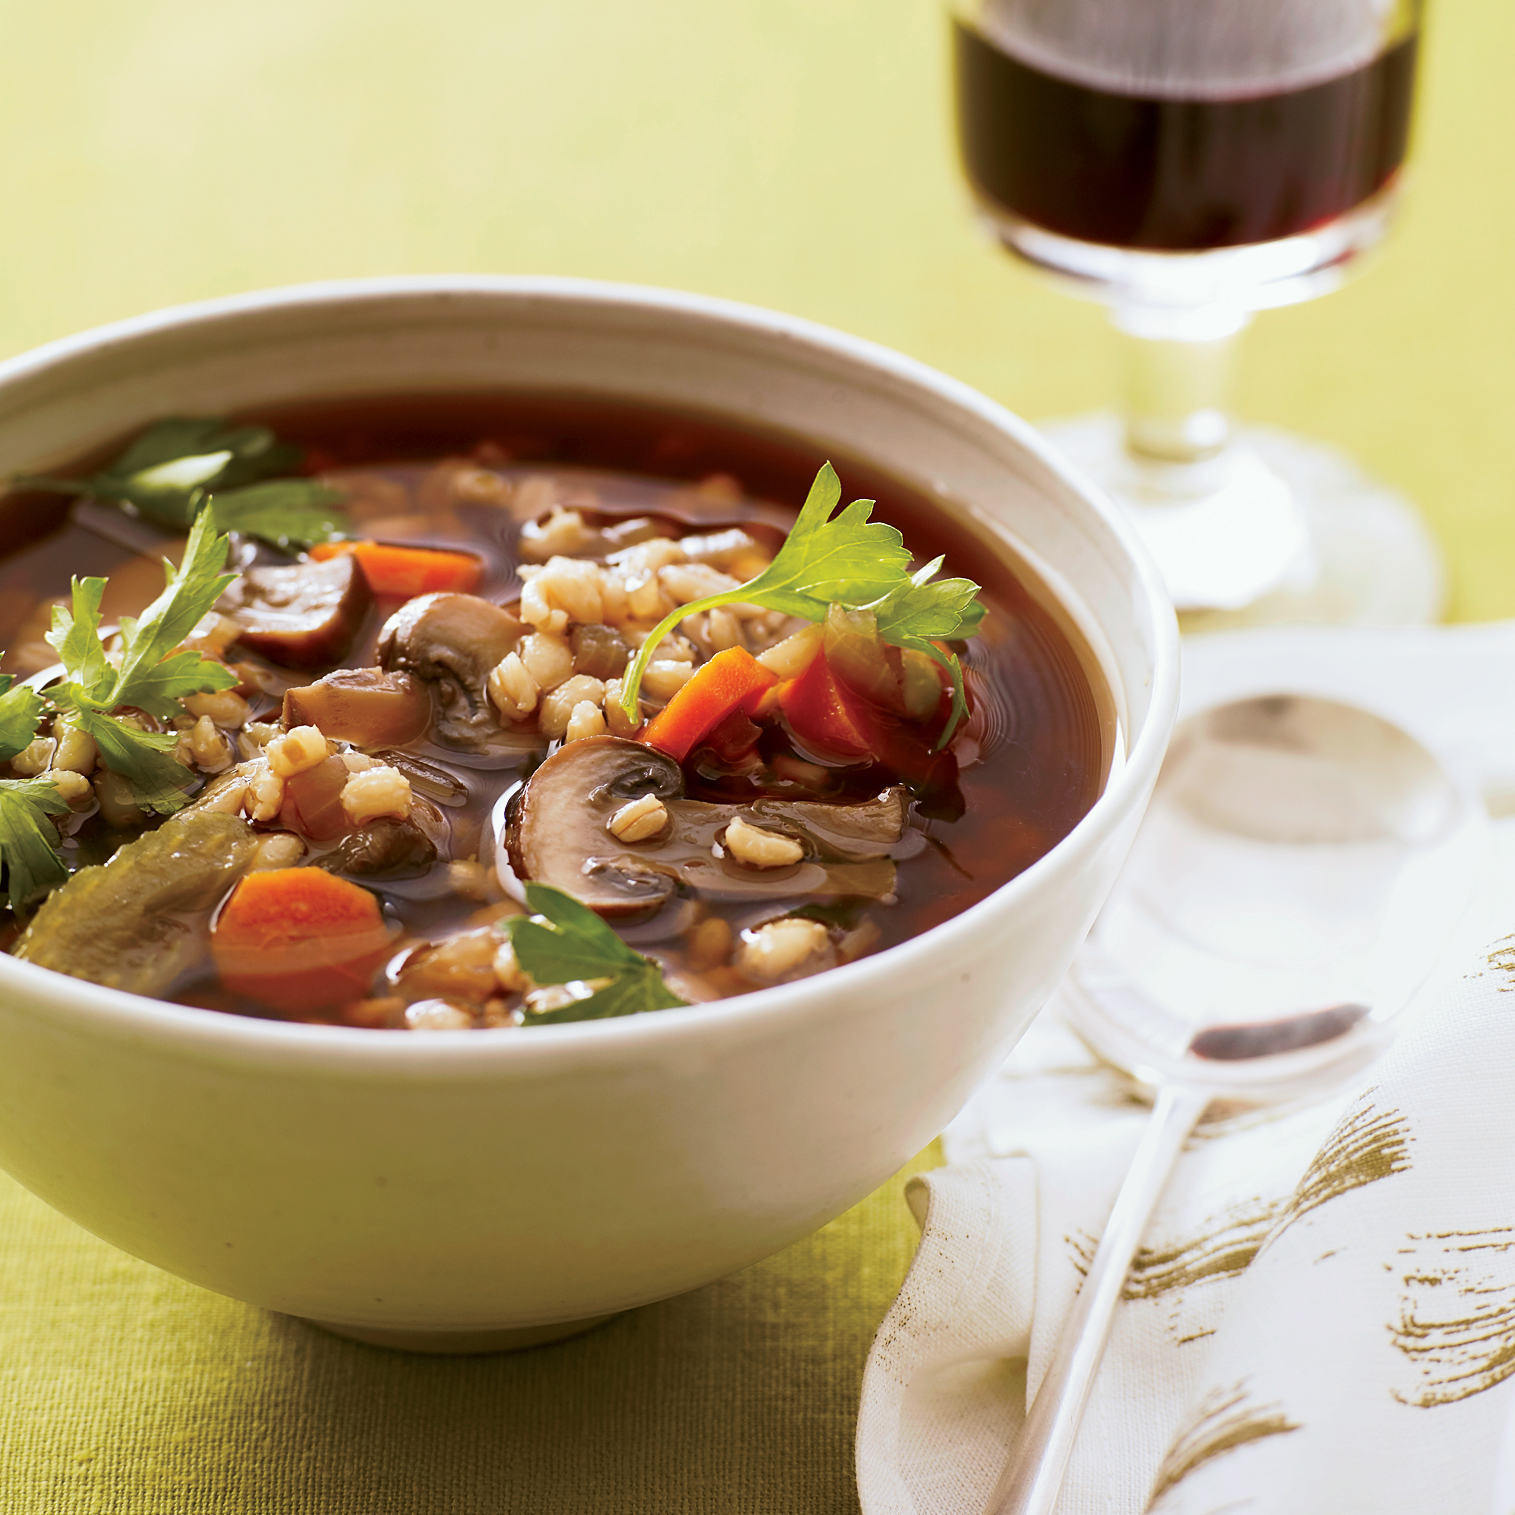 Mushroom Barley Soup and other Healthy Recipes